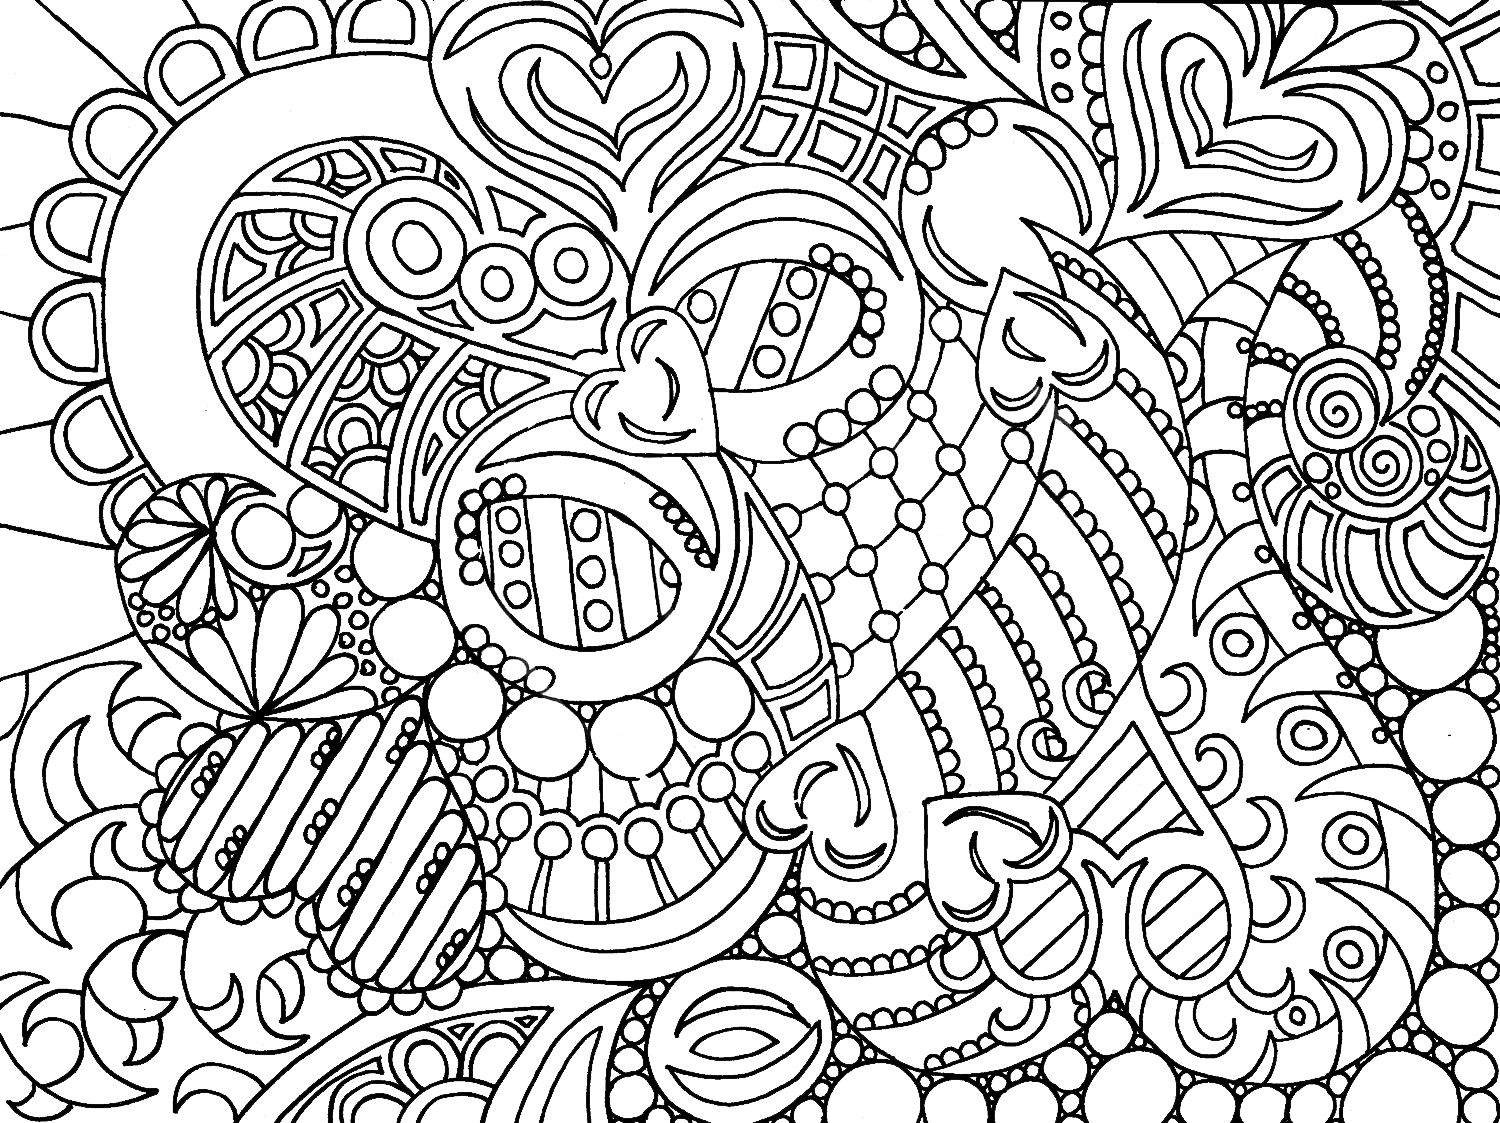 Coloring Pages For Adults To Print  free coloring pages for adults